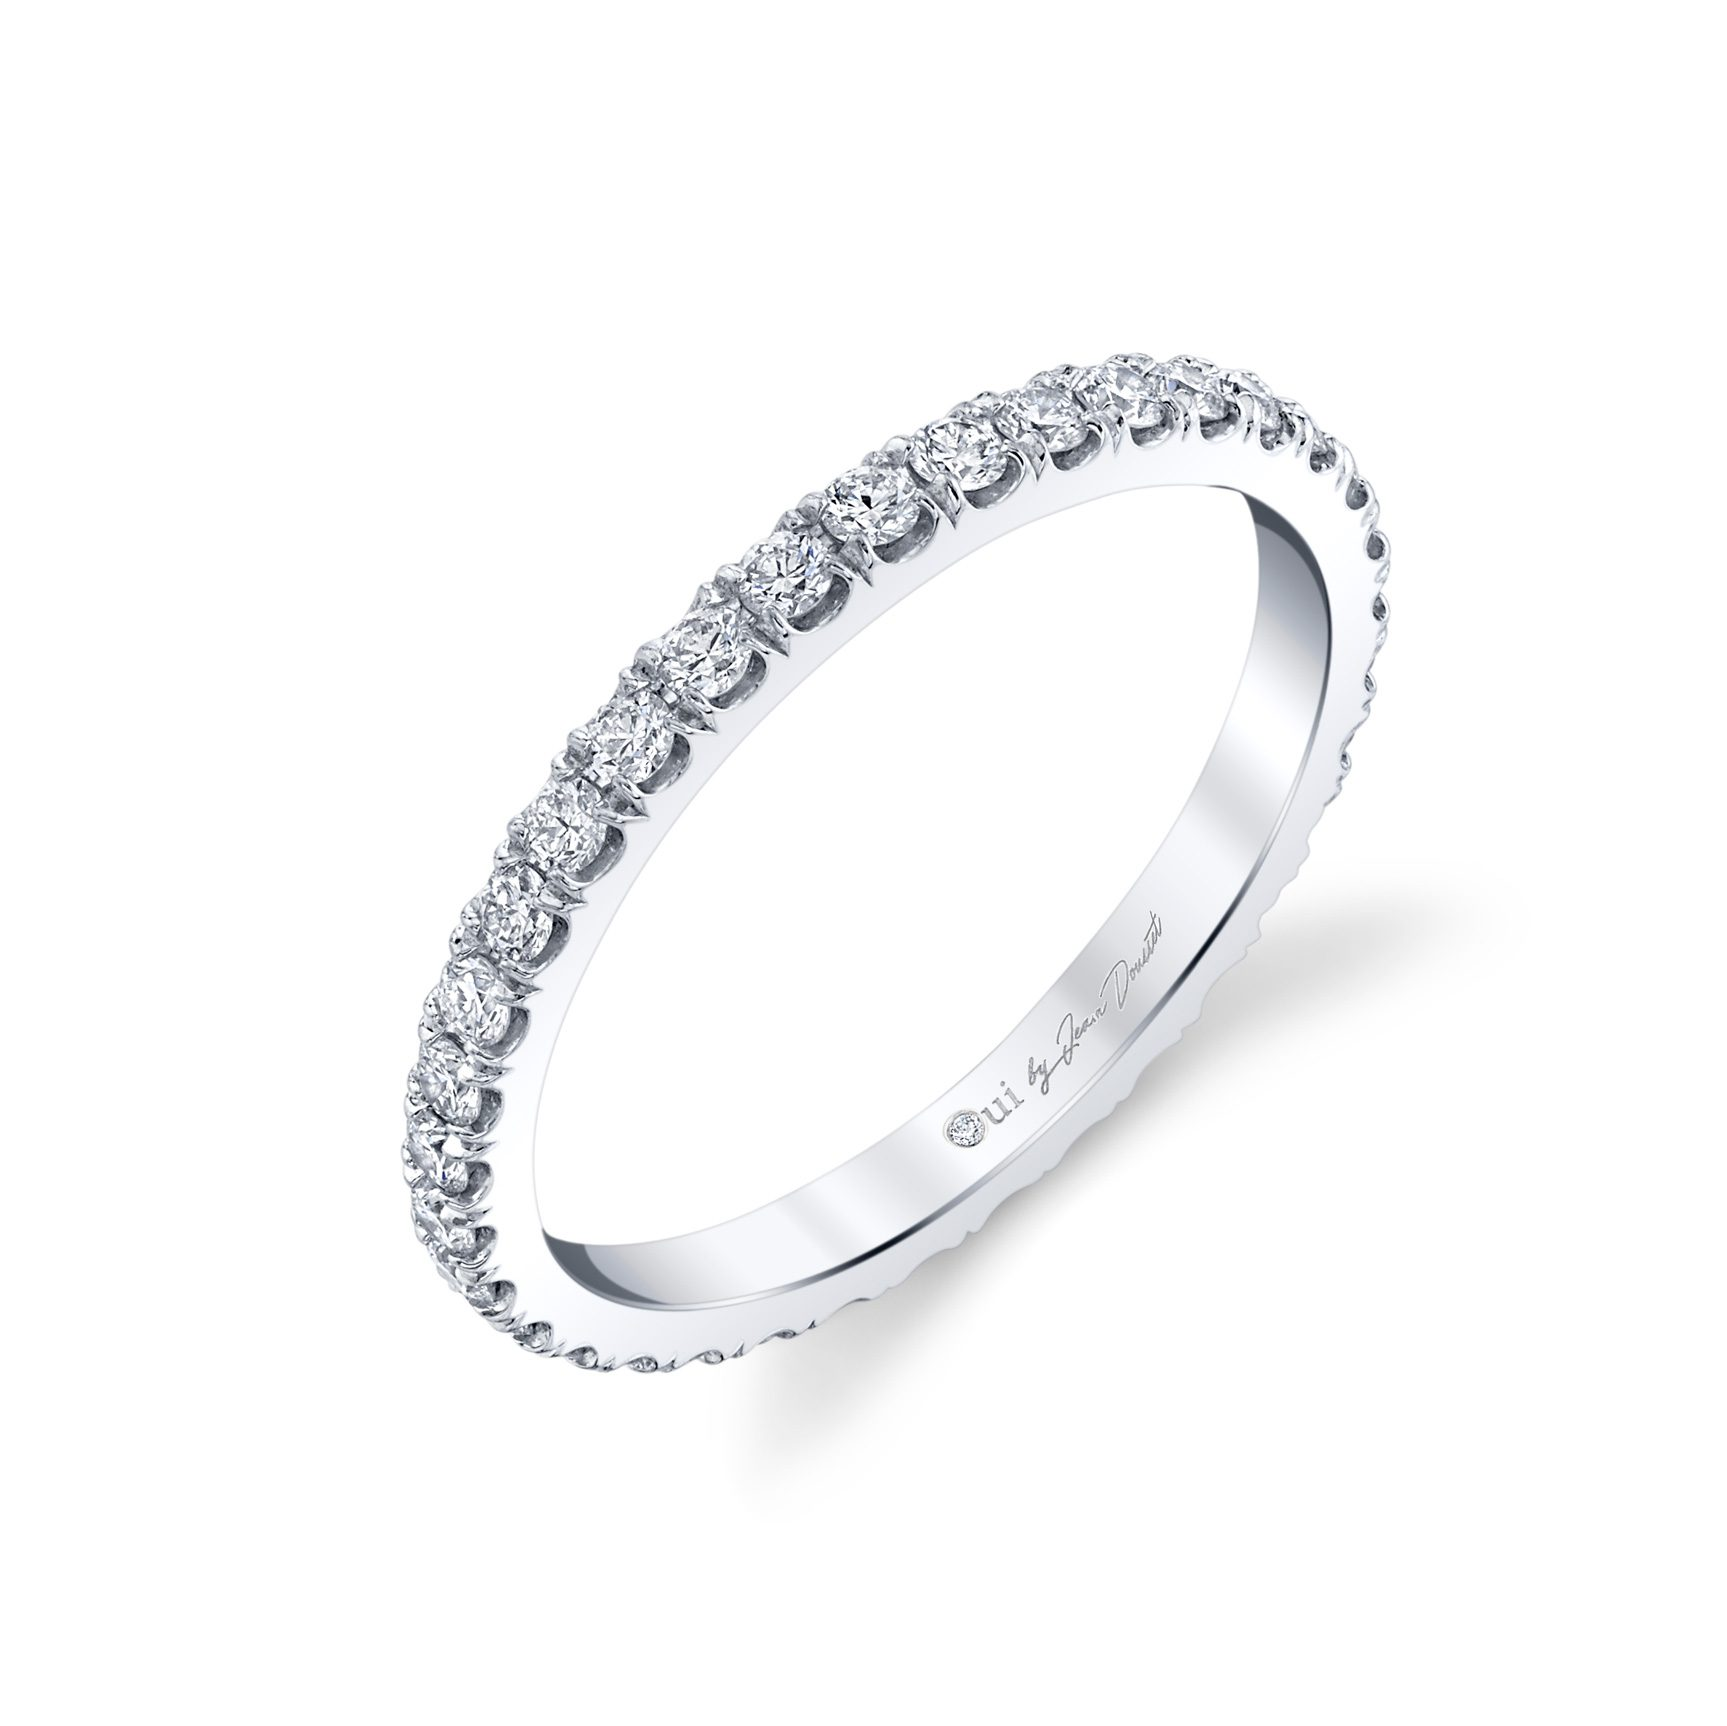 Eloise Women's Wedding Band 18k White Gold Standing View by Oui by Jean Dousset